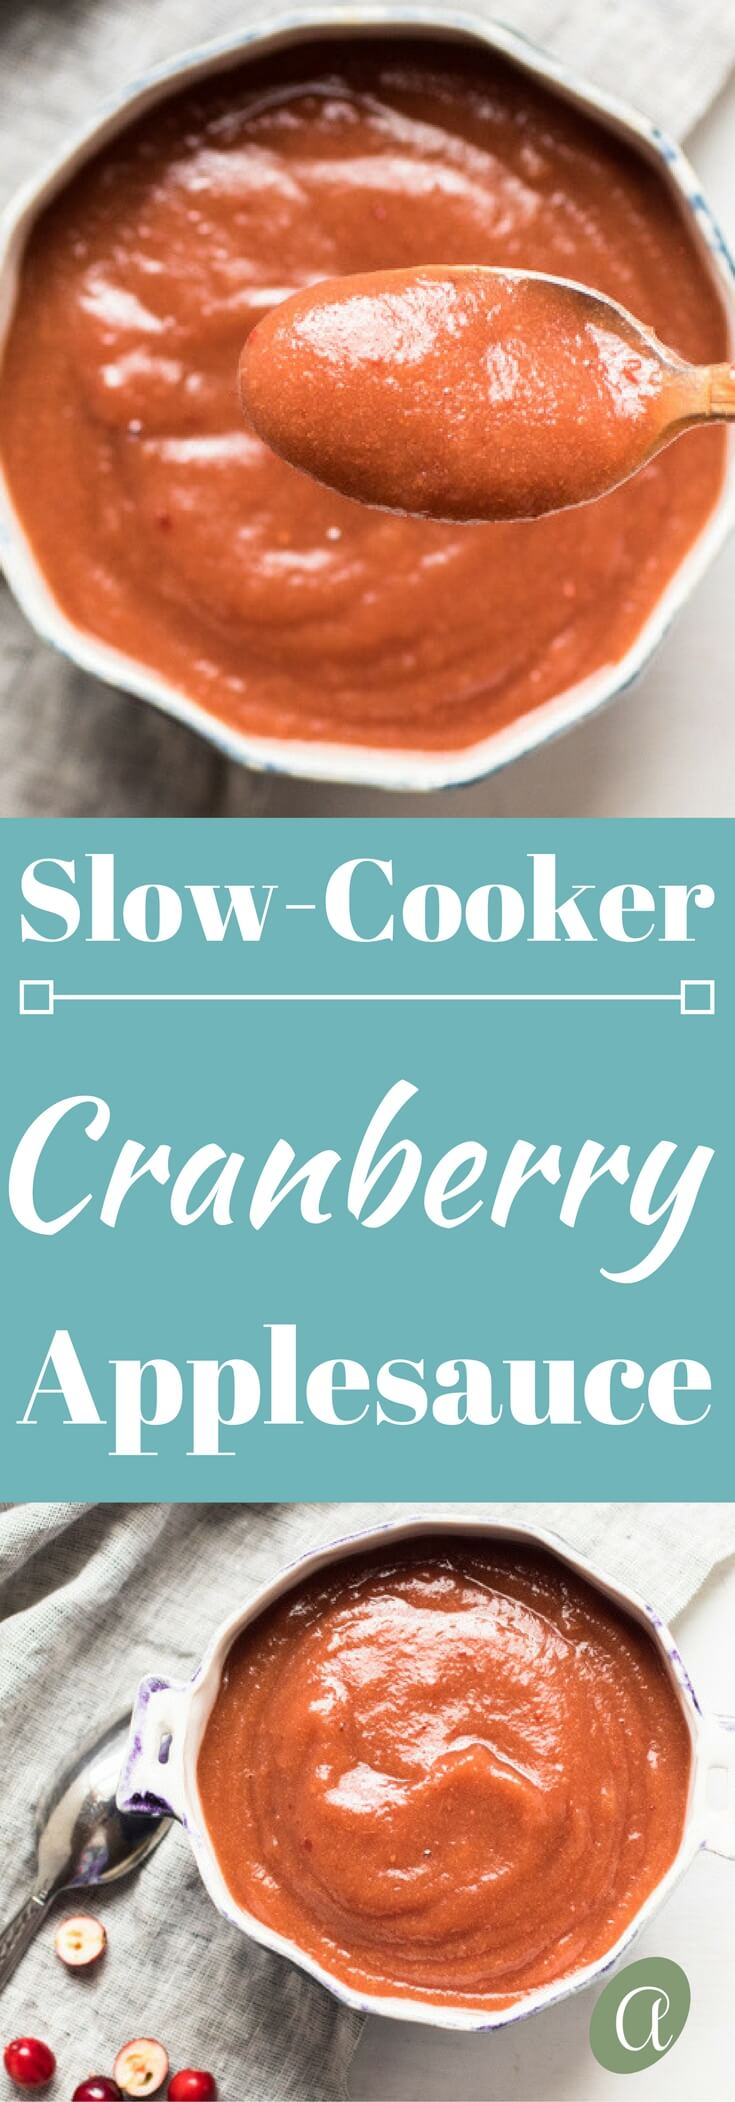 Perfectly sweet and tart, and supremely easy slow cooker maple cranberry applesauce. Refined sugar-free, paleo friendly, and the ideal seasonal treat!